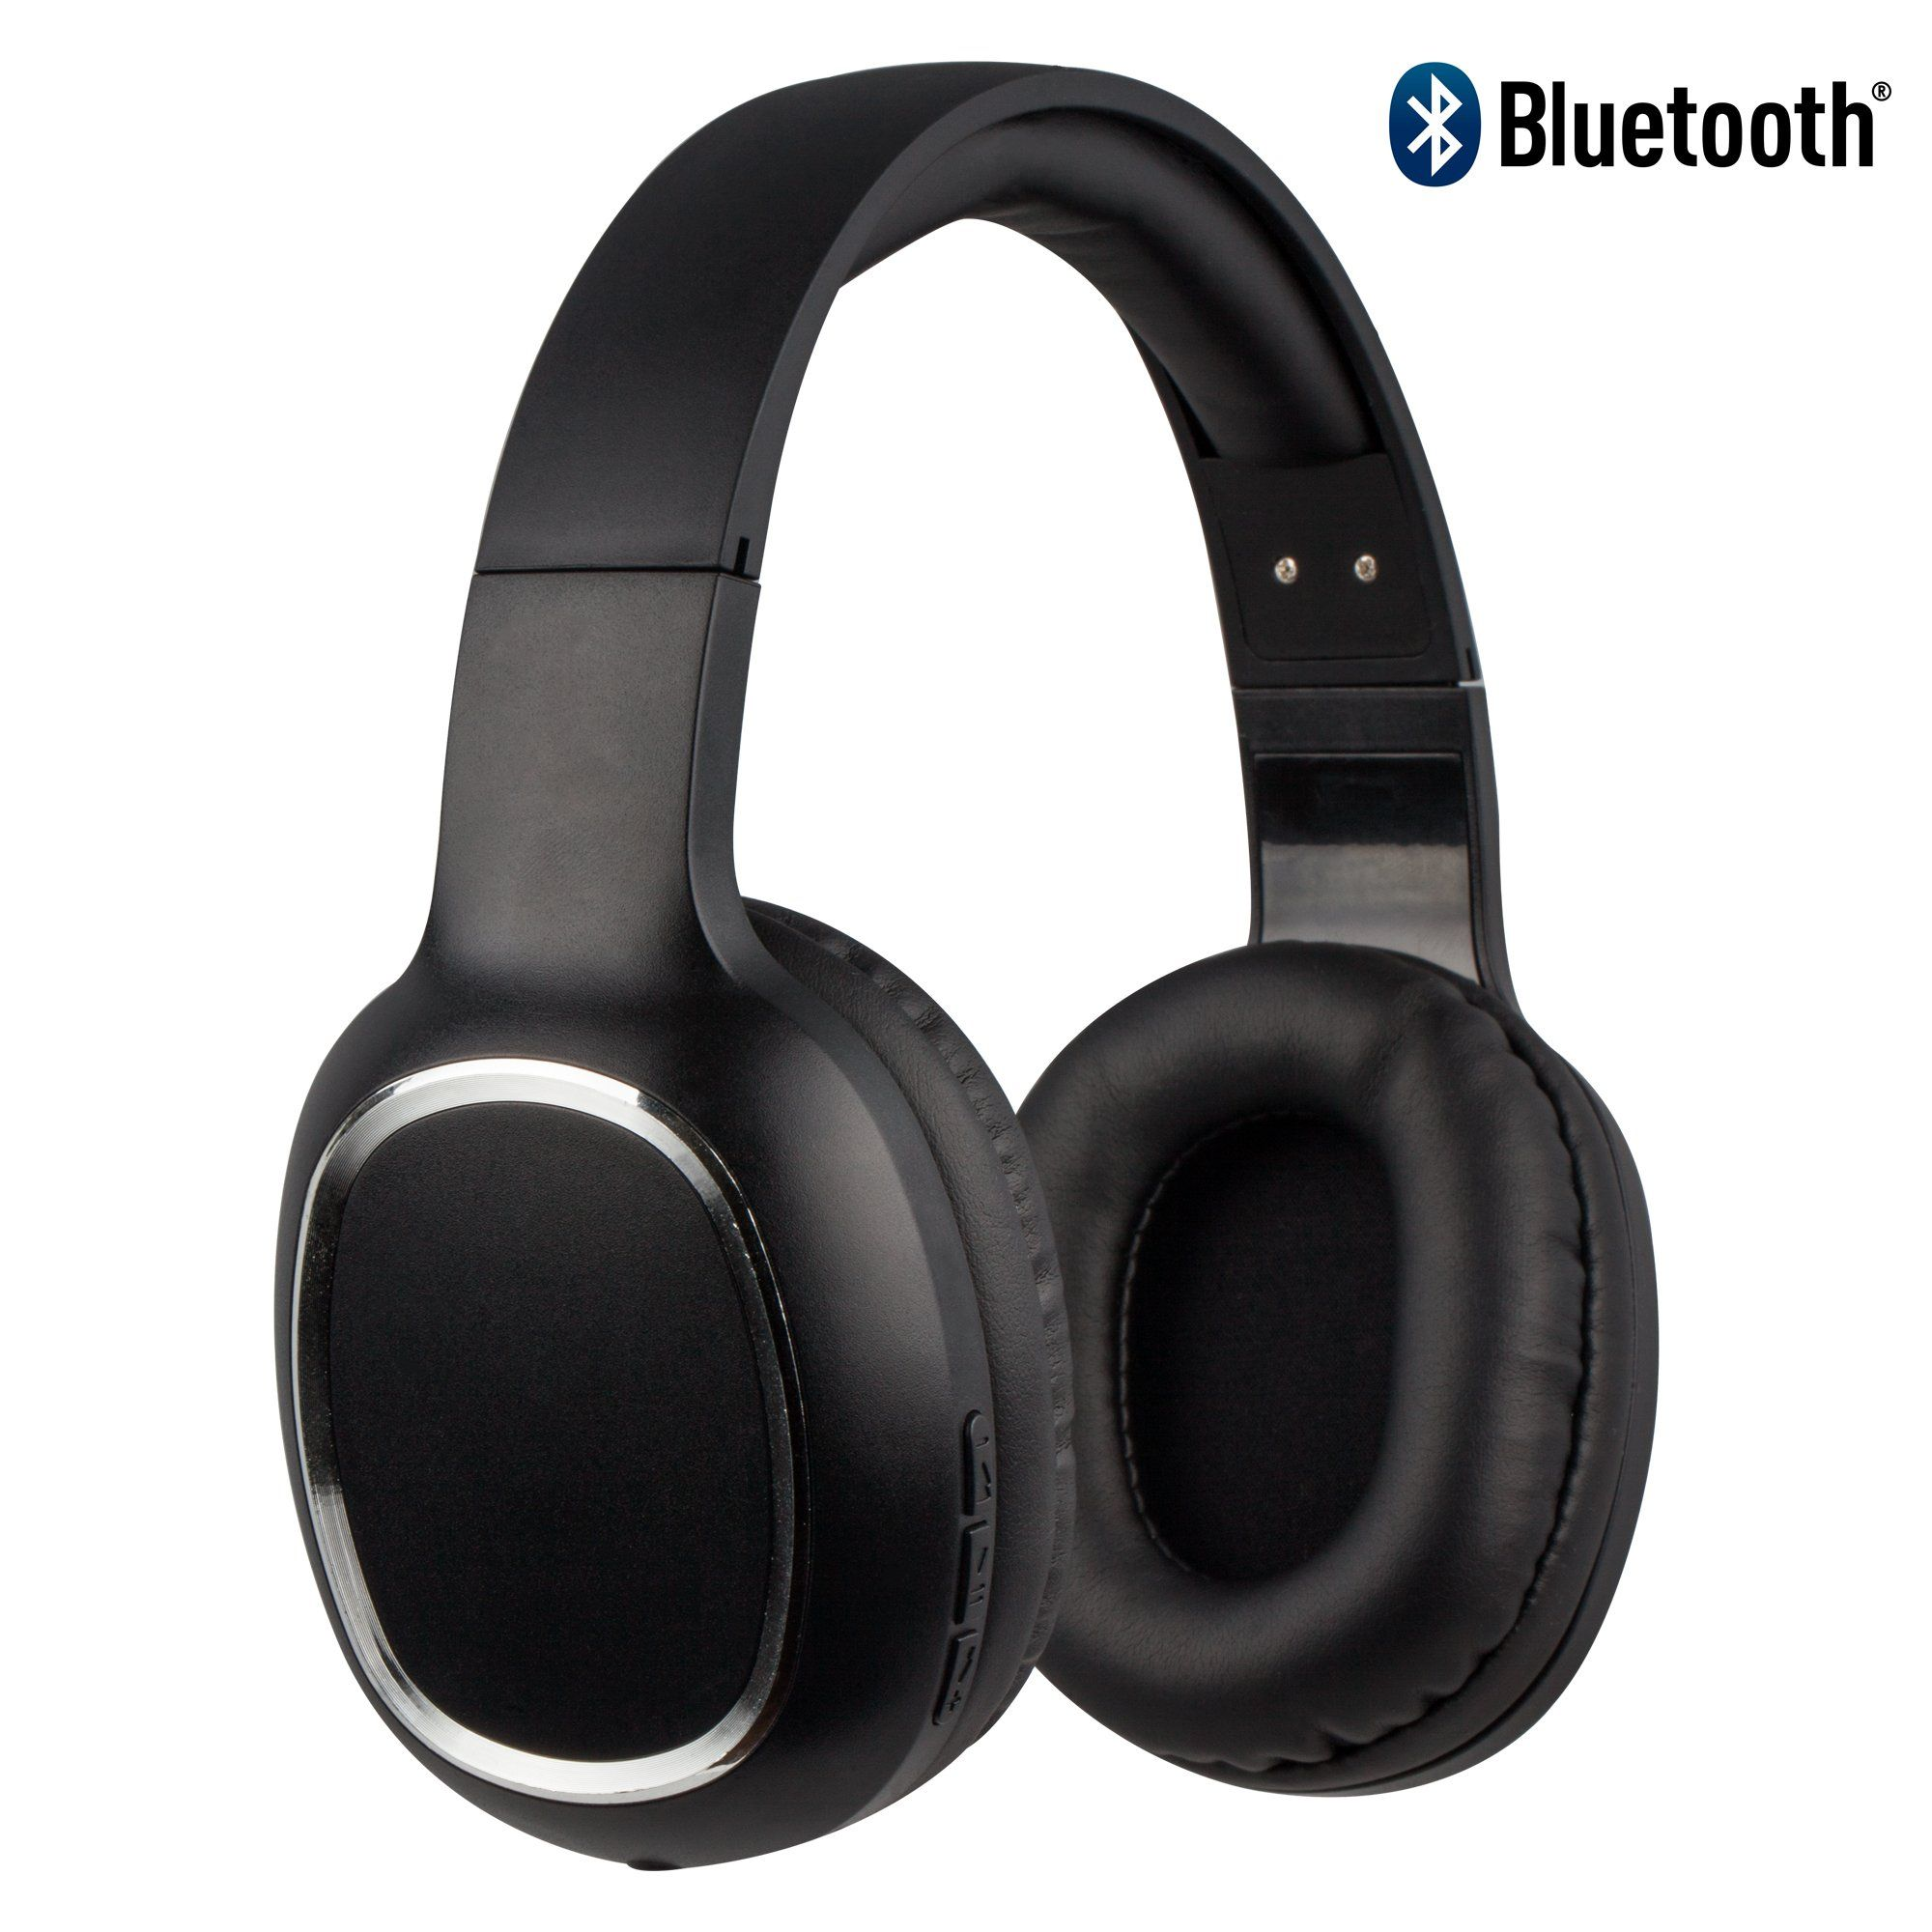 aa91cf343a4 CYLO FREEWAVE Wireless Bluetooth Headphones Lightweight Over Ear Stereo  Bluetooth Headphones With Bass, Microphone and